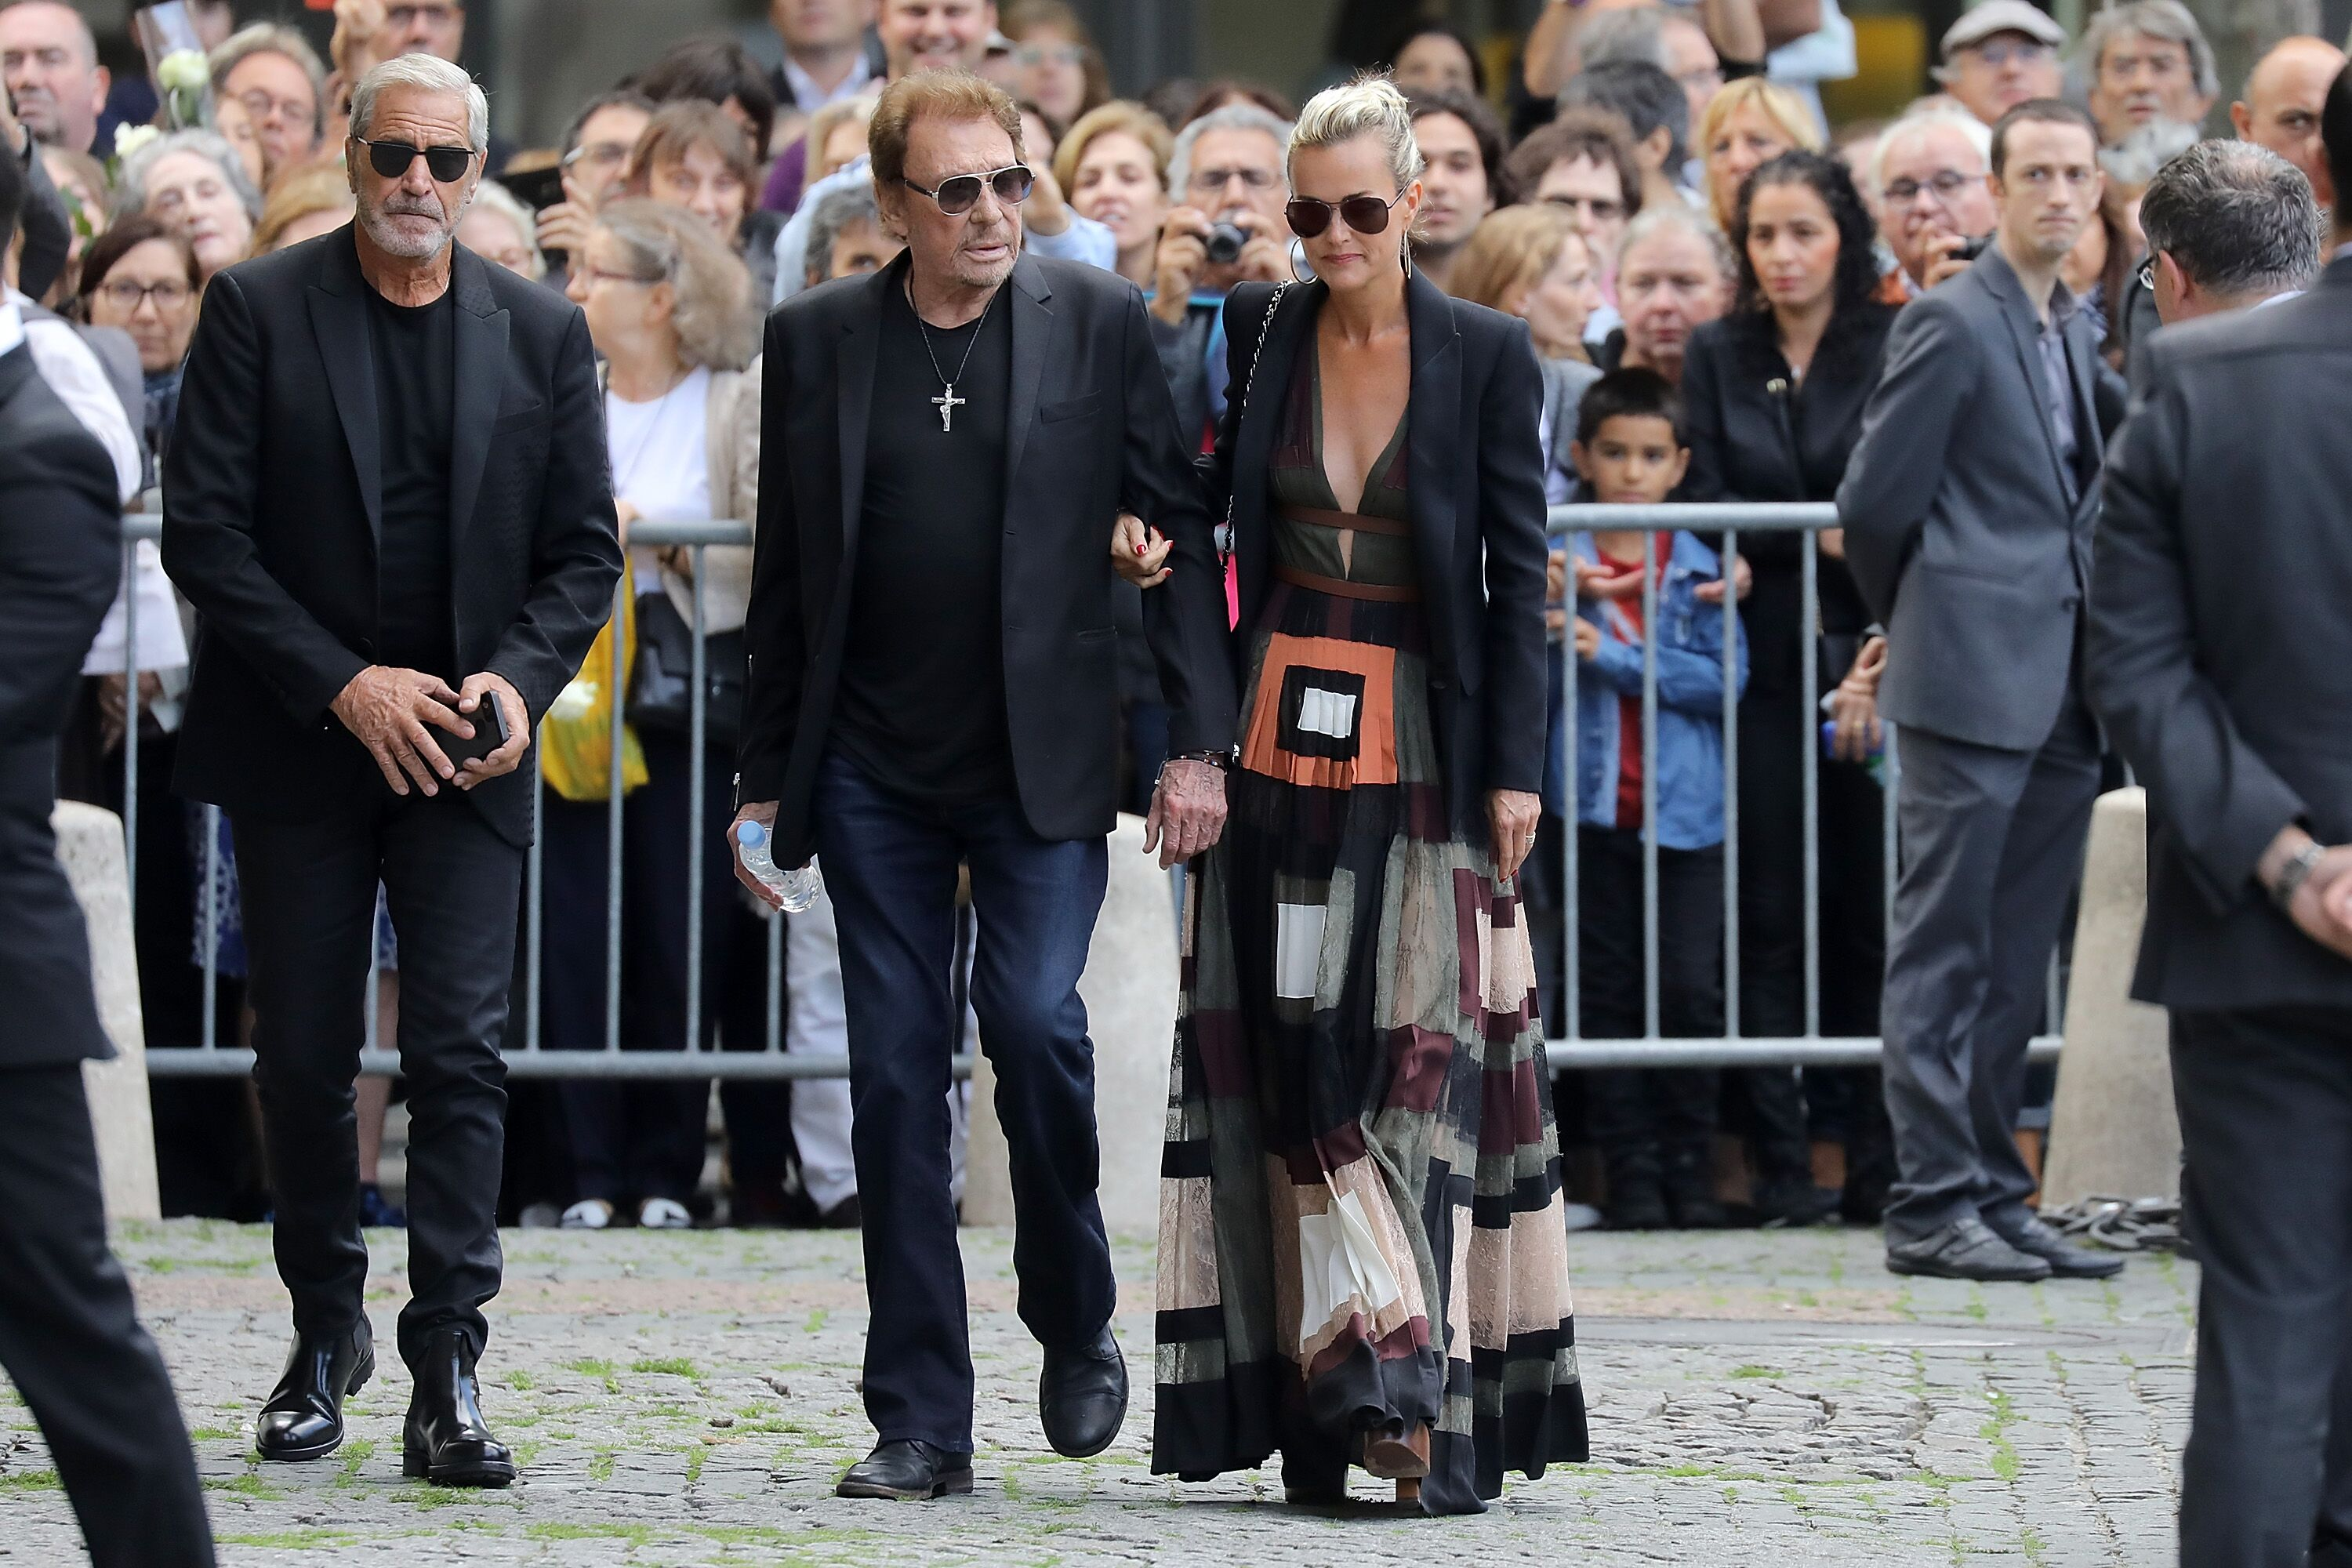 Johnny et Laetitia Hallyday assistent aux funérailles de Mireille Darc à l'église Saint-Sulpice à Paris, France. | Photo : Getty Images